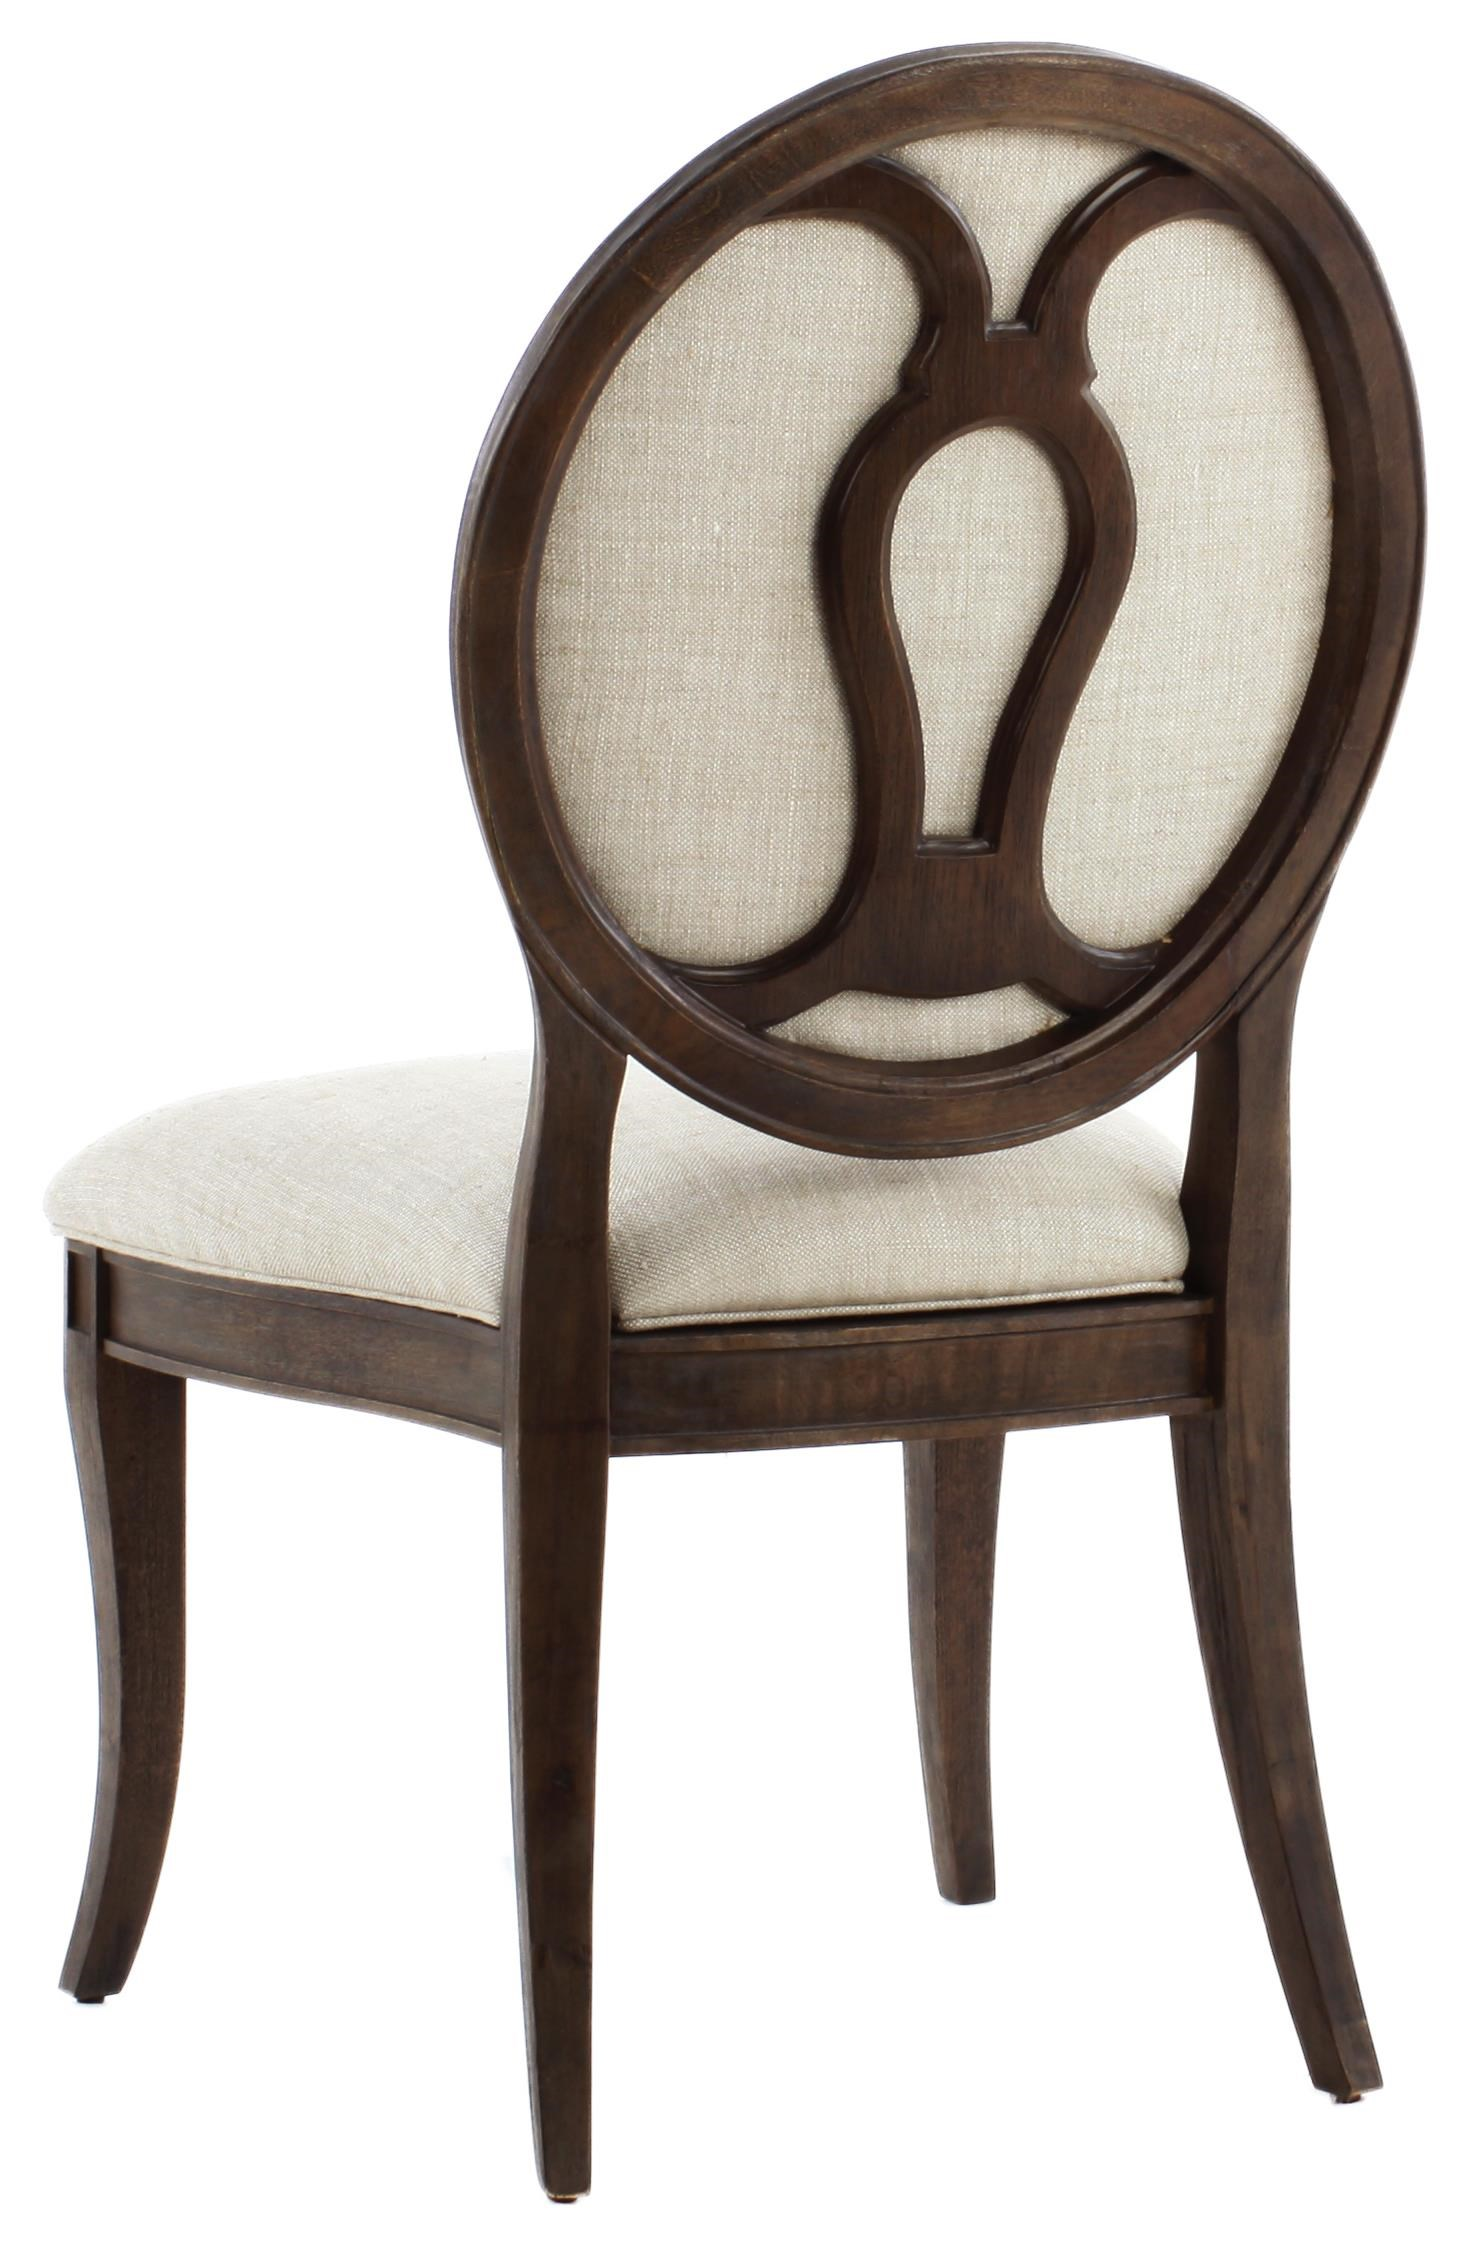 A.R.T. Furniture Inc Saint Germain Oval Back Side Chair